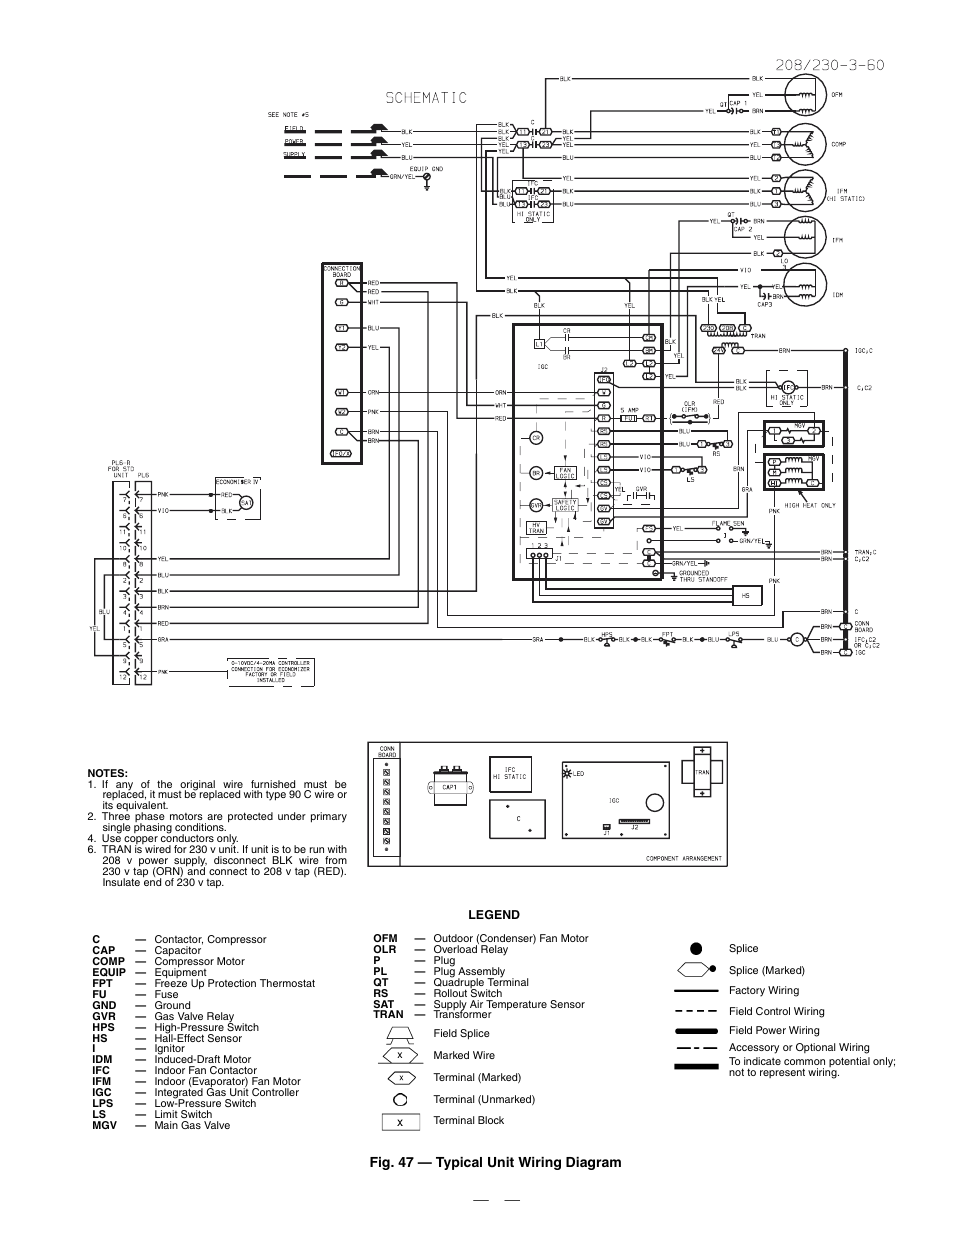 Fig  47  U2014 Typical Unit Wiring Diagram